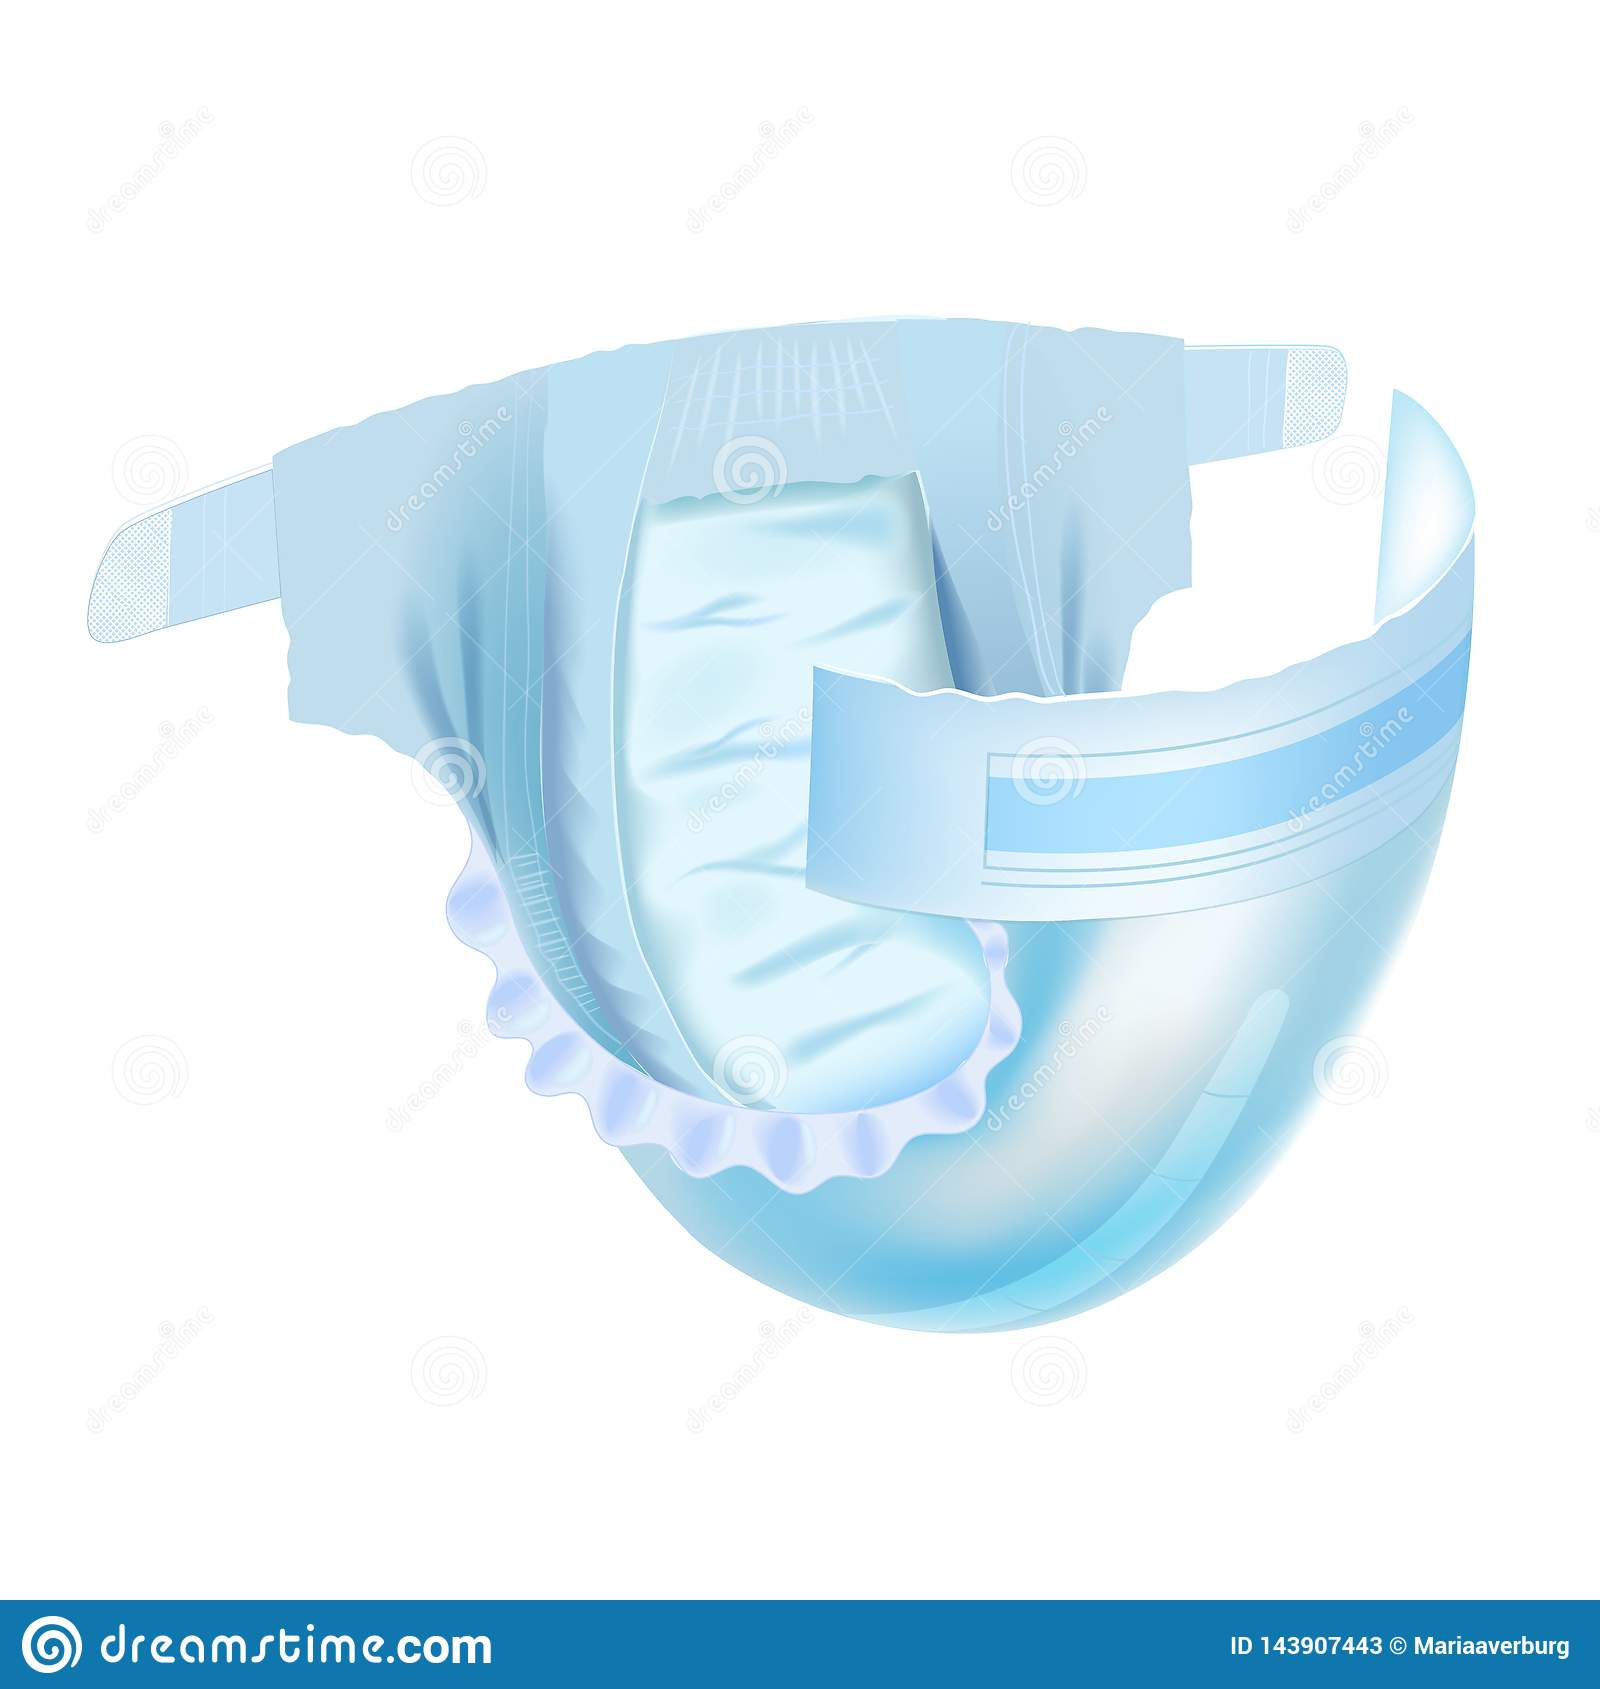 Baby diaper isolated on white background. Realistic vector illustration for diapers packs, and other babies production.